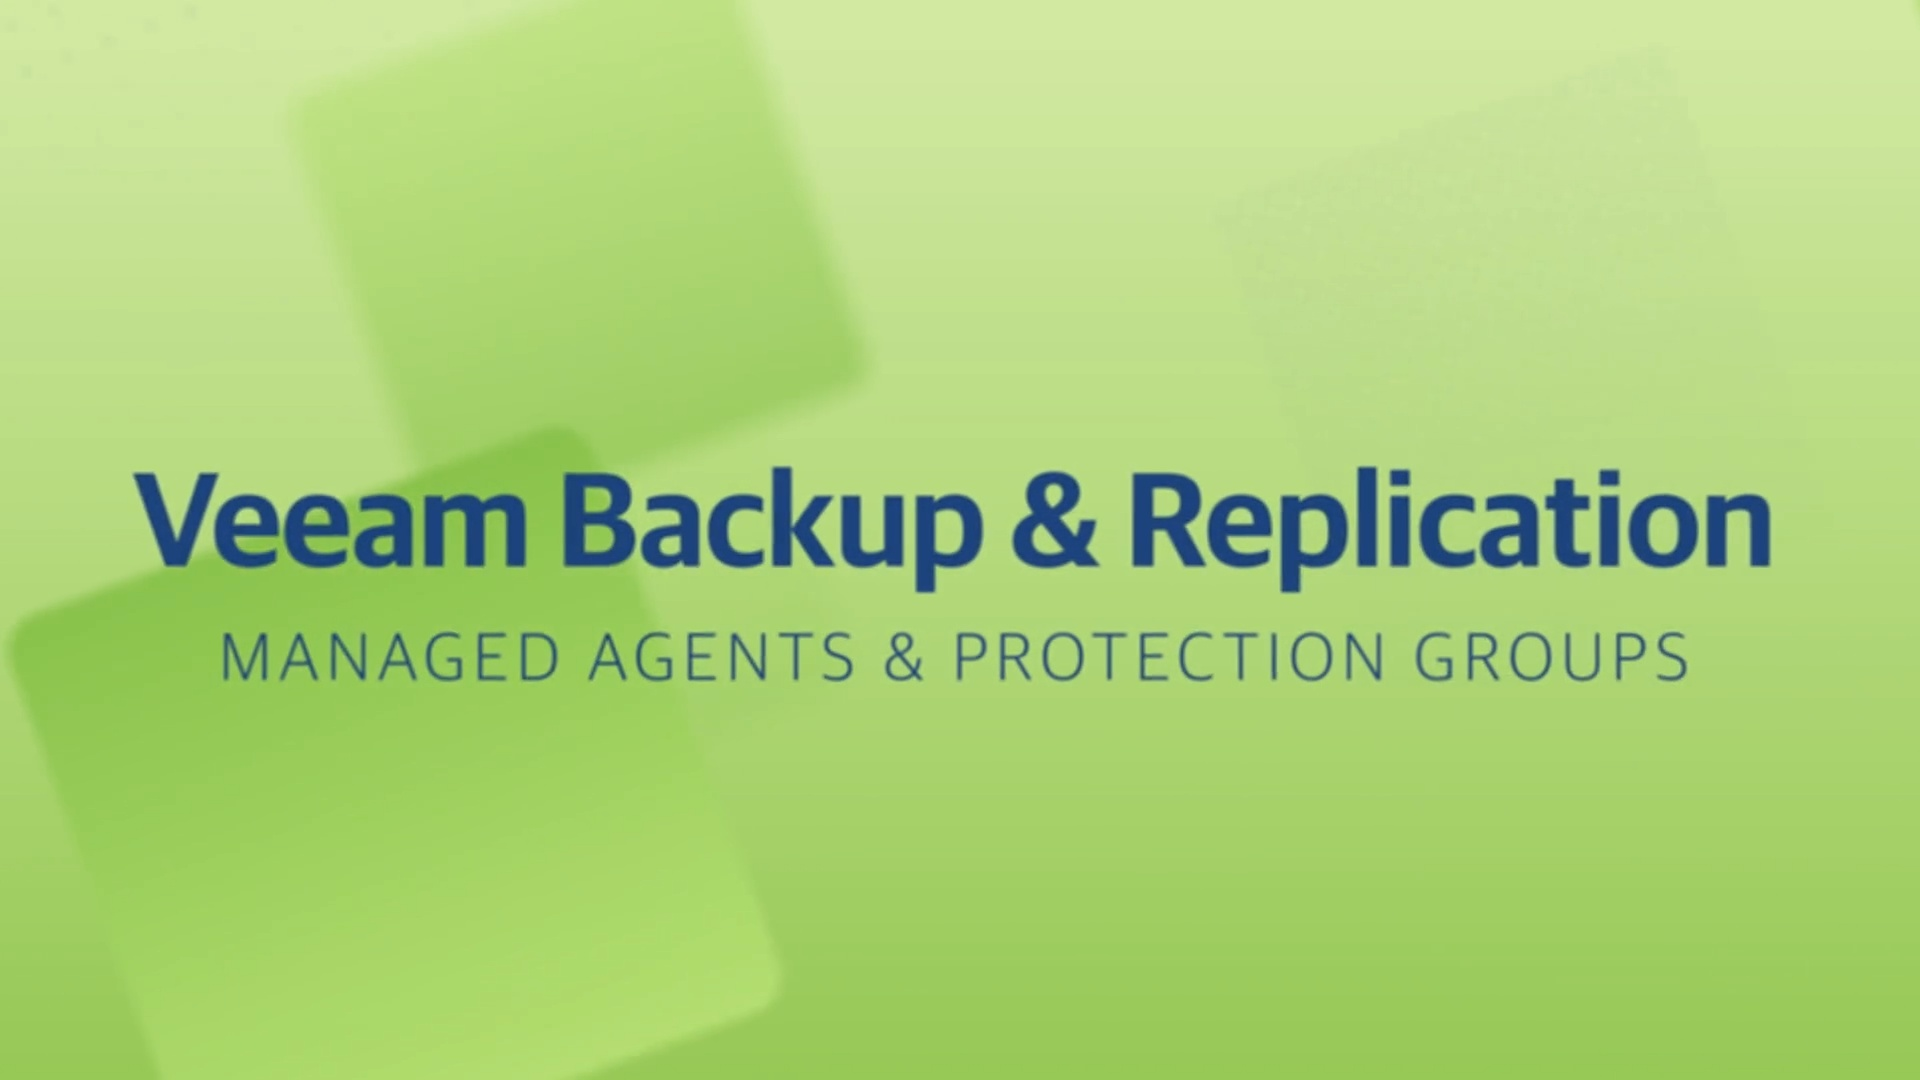 Product launch v11 - VBR - Managed Agents & Protection Groups